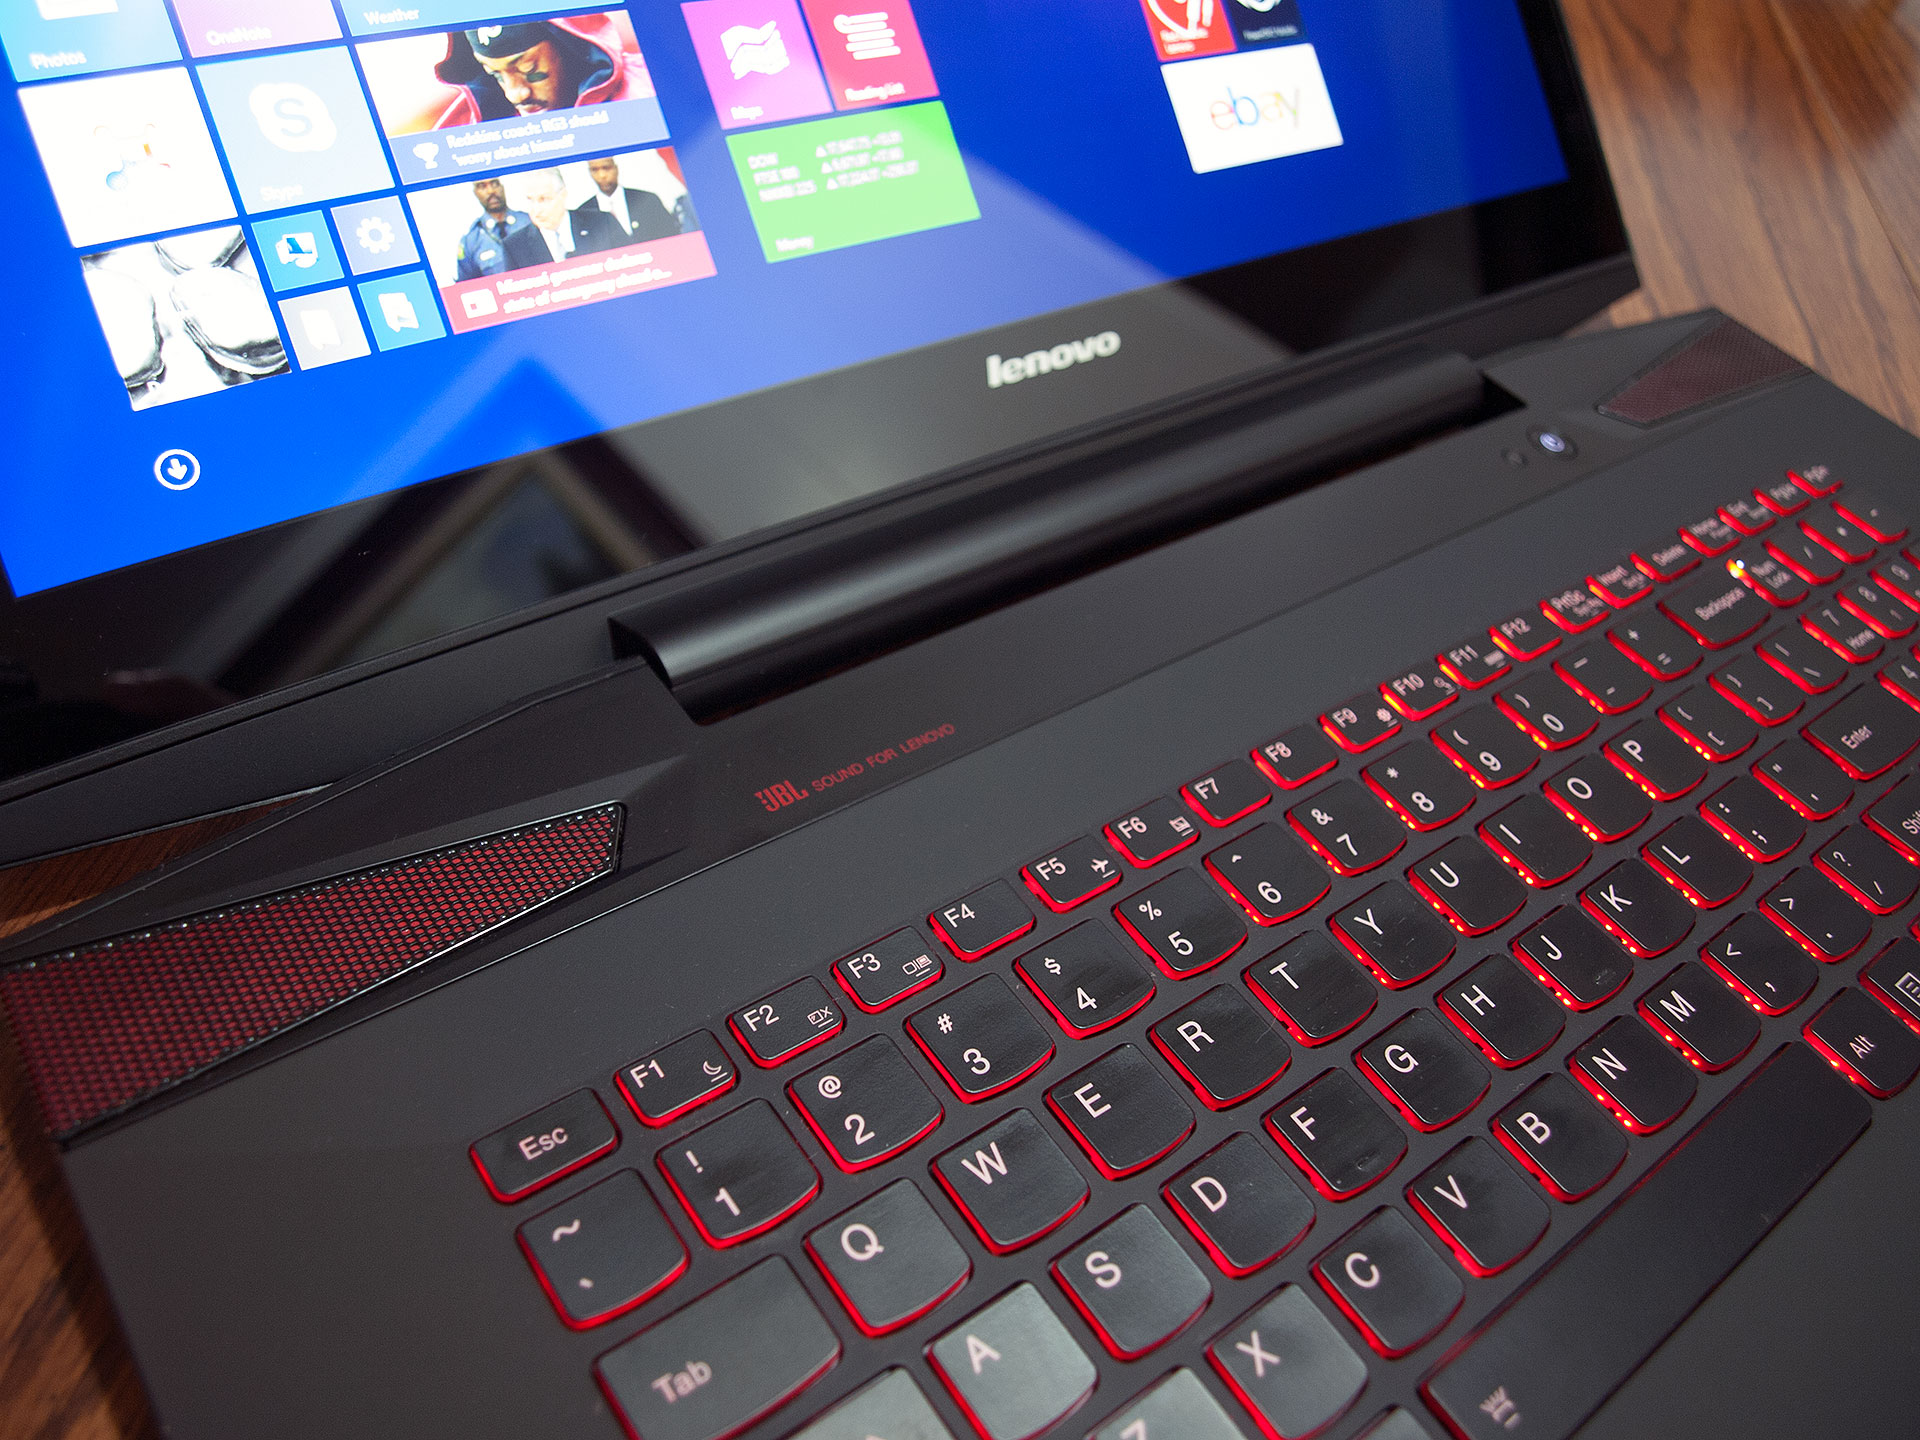 Lenovo Y70 Touch Laptop Review